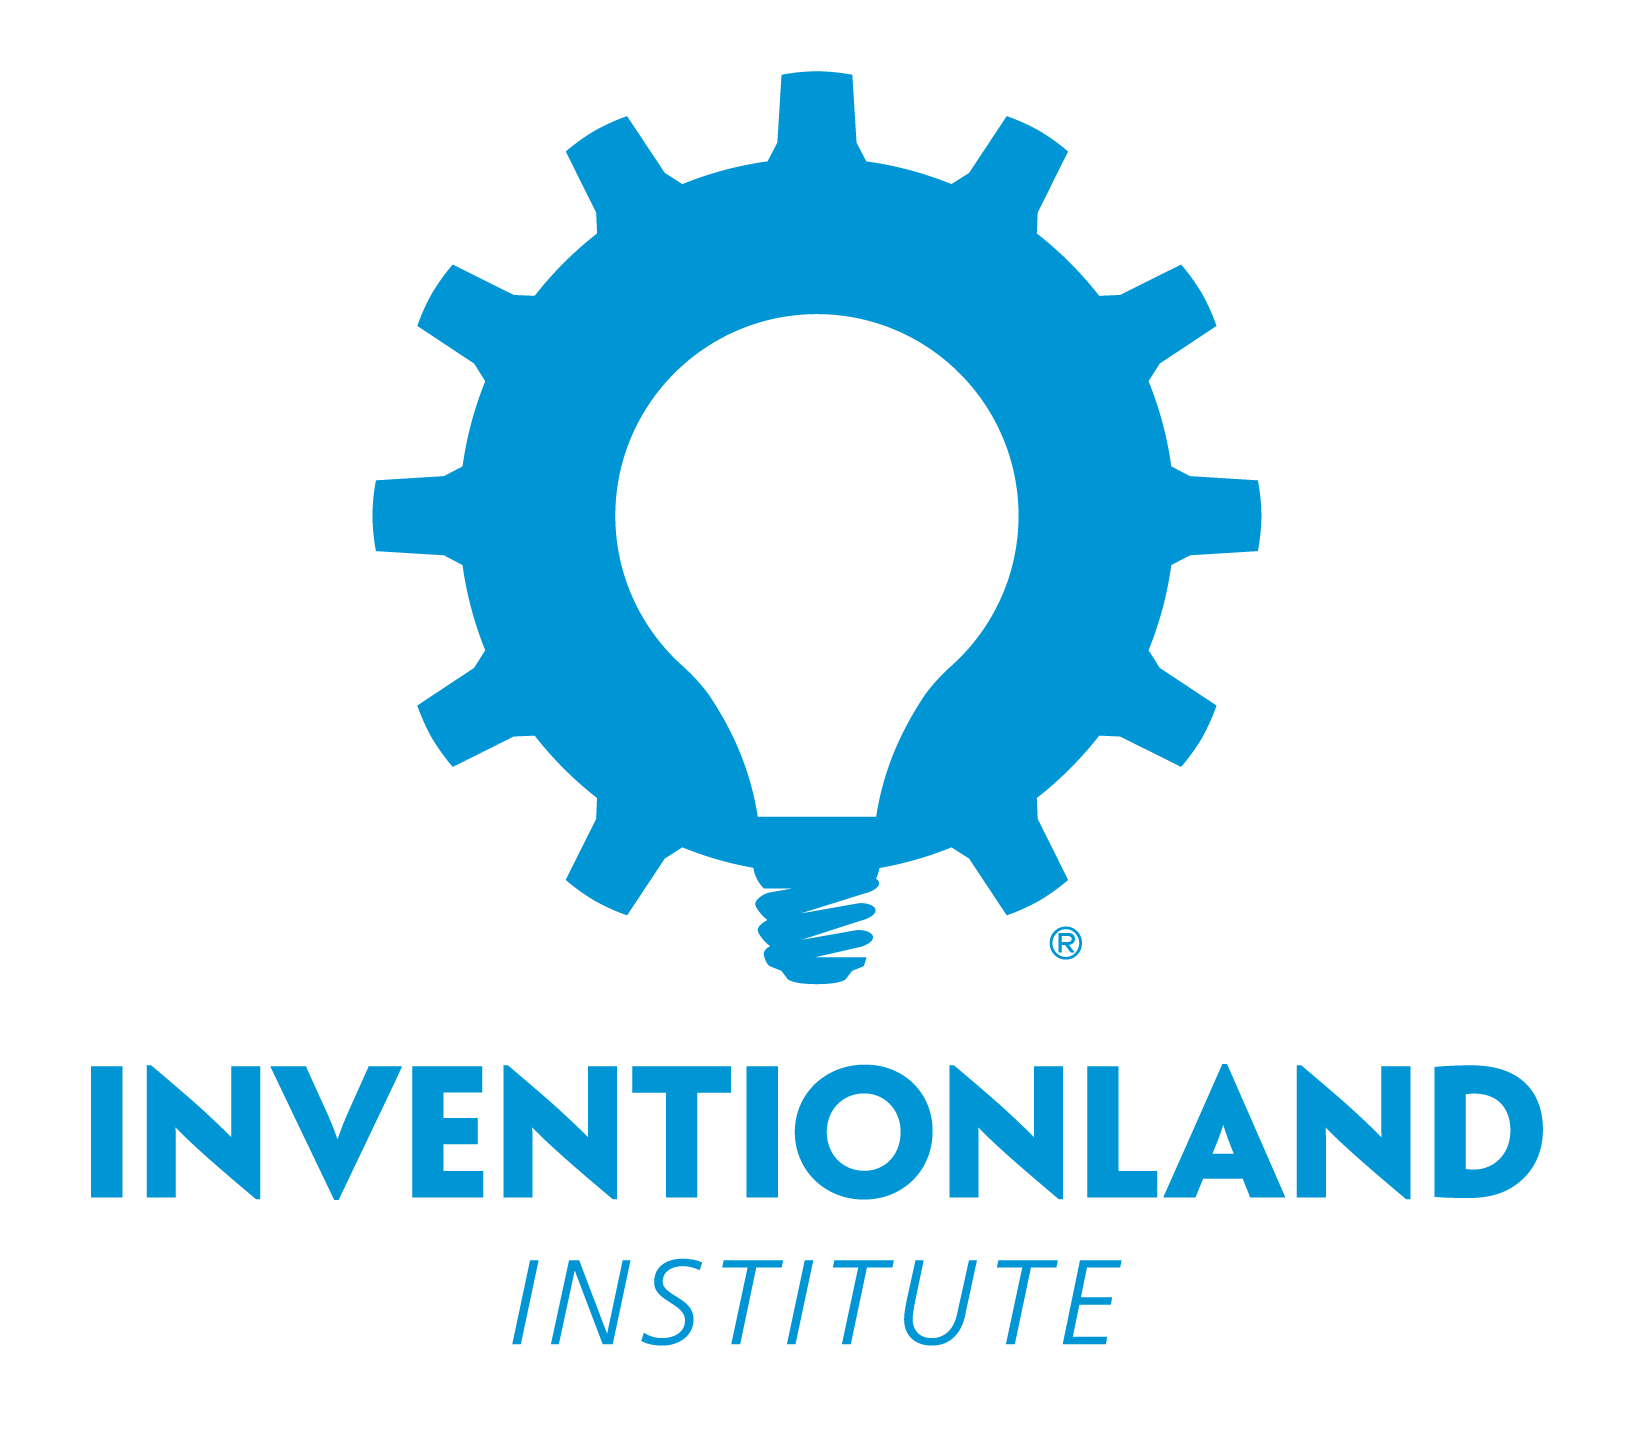 Inventionland Institute Logo